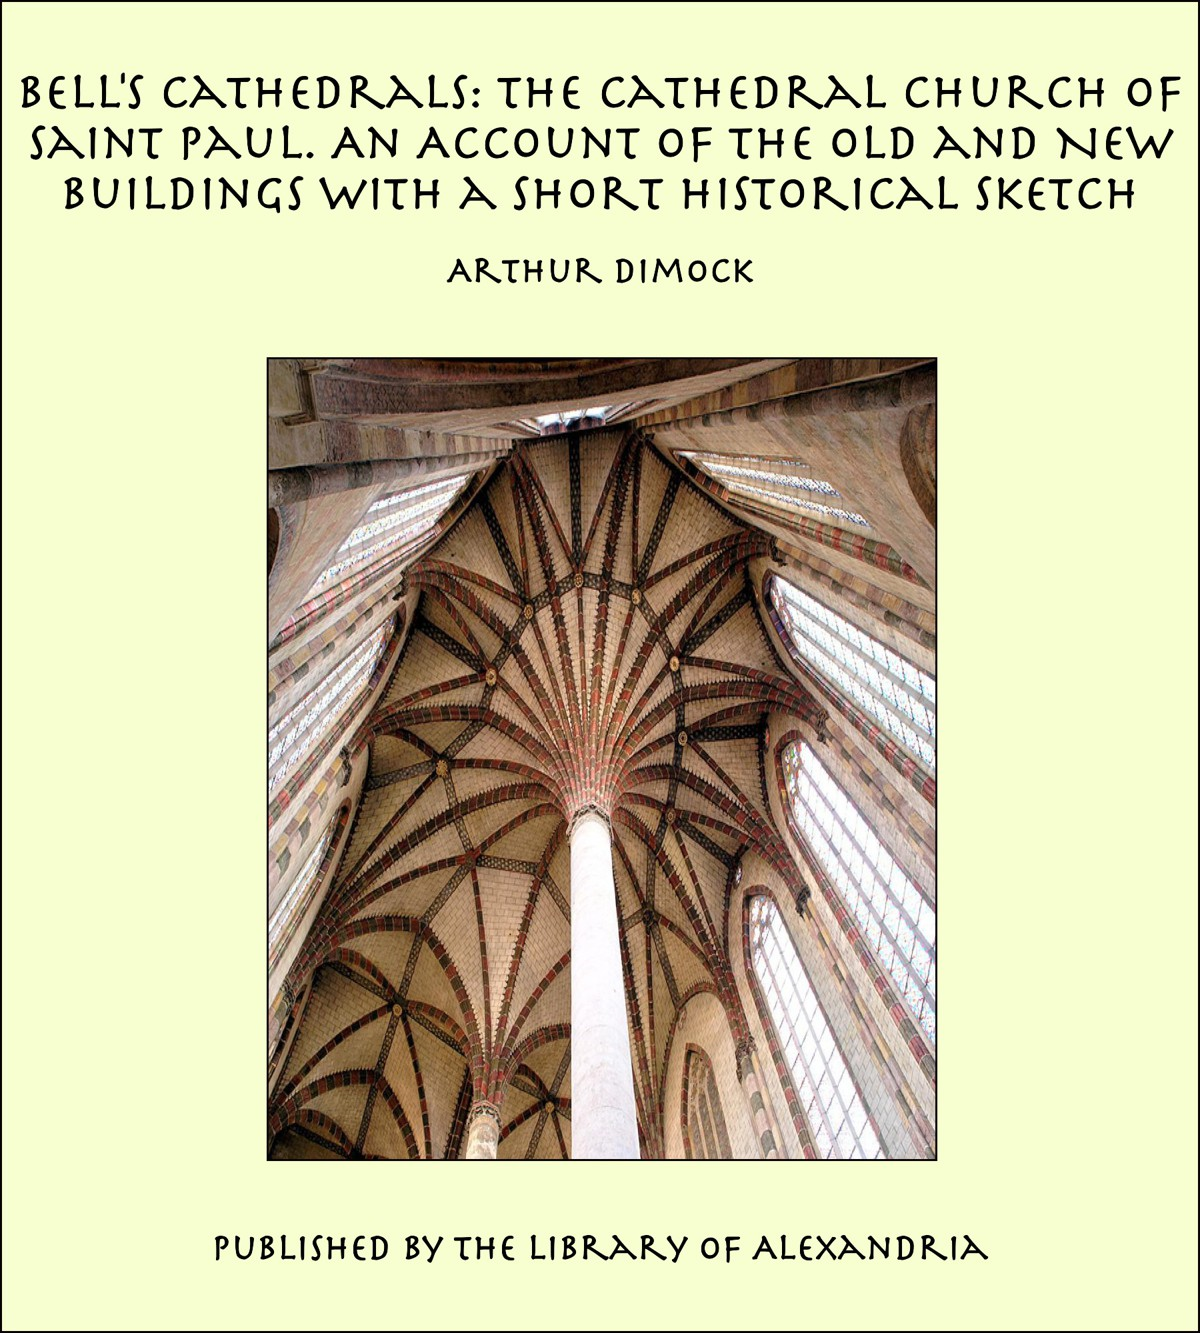 Arthur Dimock - Bell's Cathedrals: The Cathedral Church of Saint Paul. An Account of the Old and New Buildings with a Short Historical Sketch